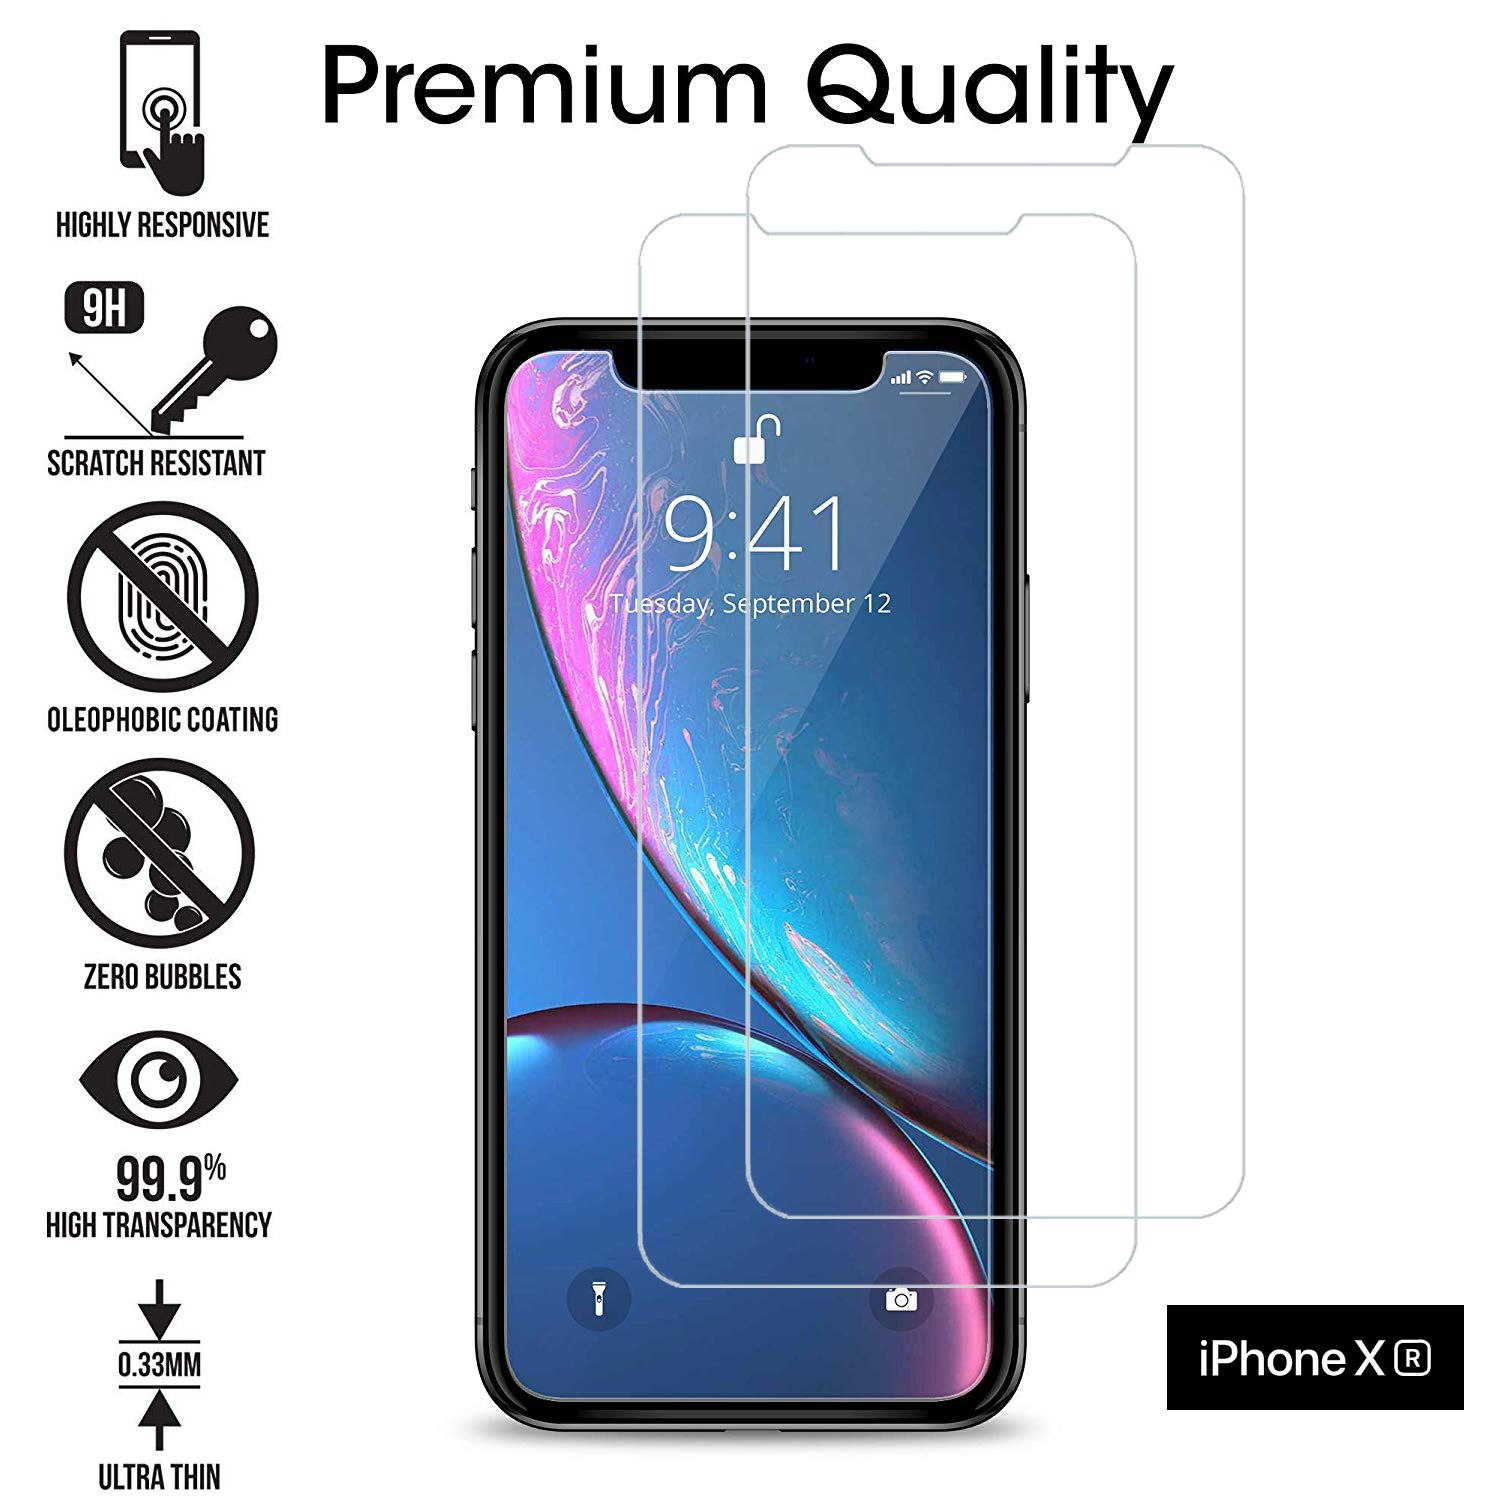 TEMPERED-GLASS-FILM-SCREEN-PROTECTOR-FOR-NEW-iPhone-XR-XS-MAX-8-7-6s-5s-2018-2PK thumbnail 35